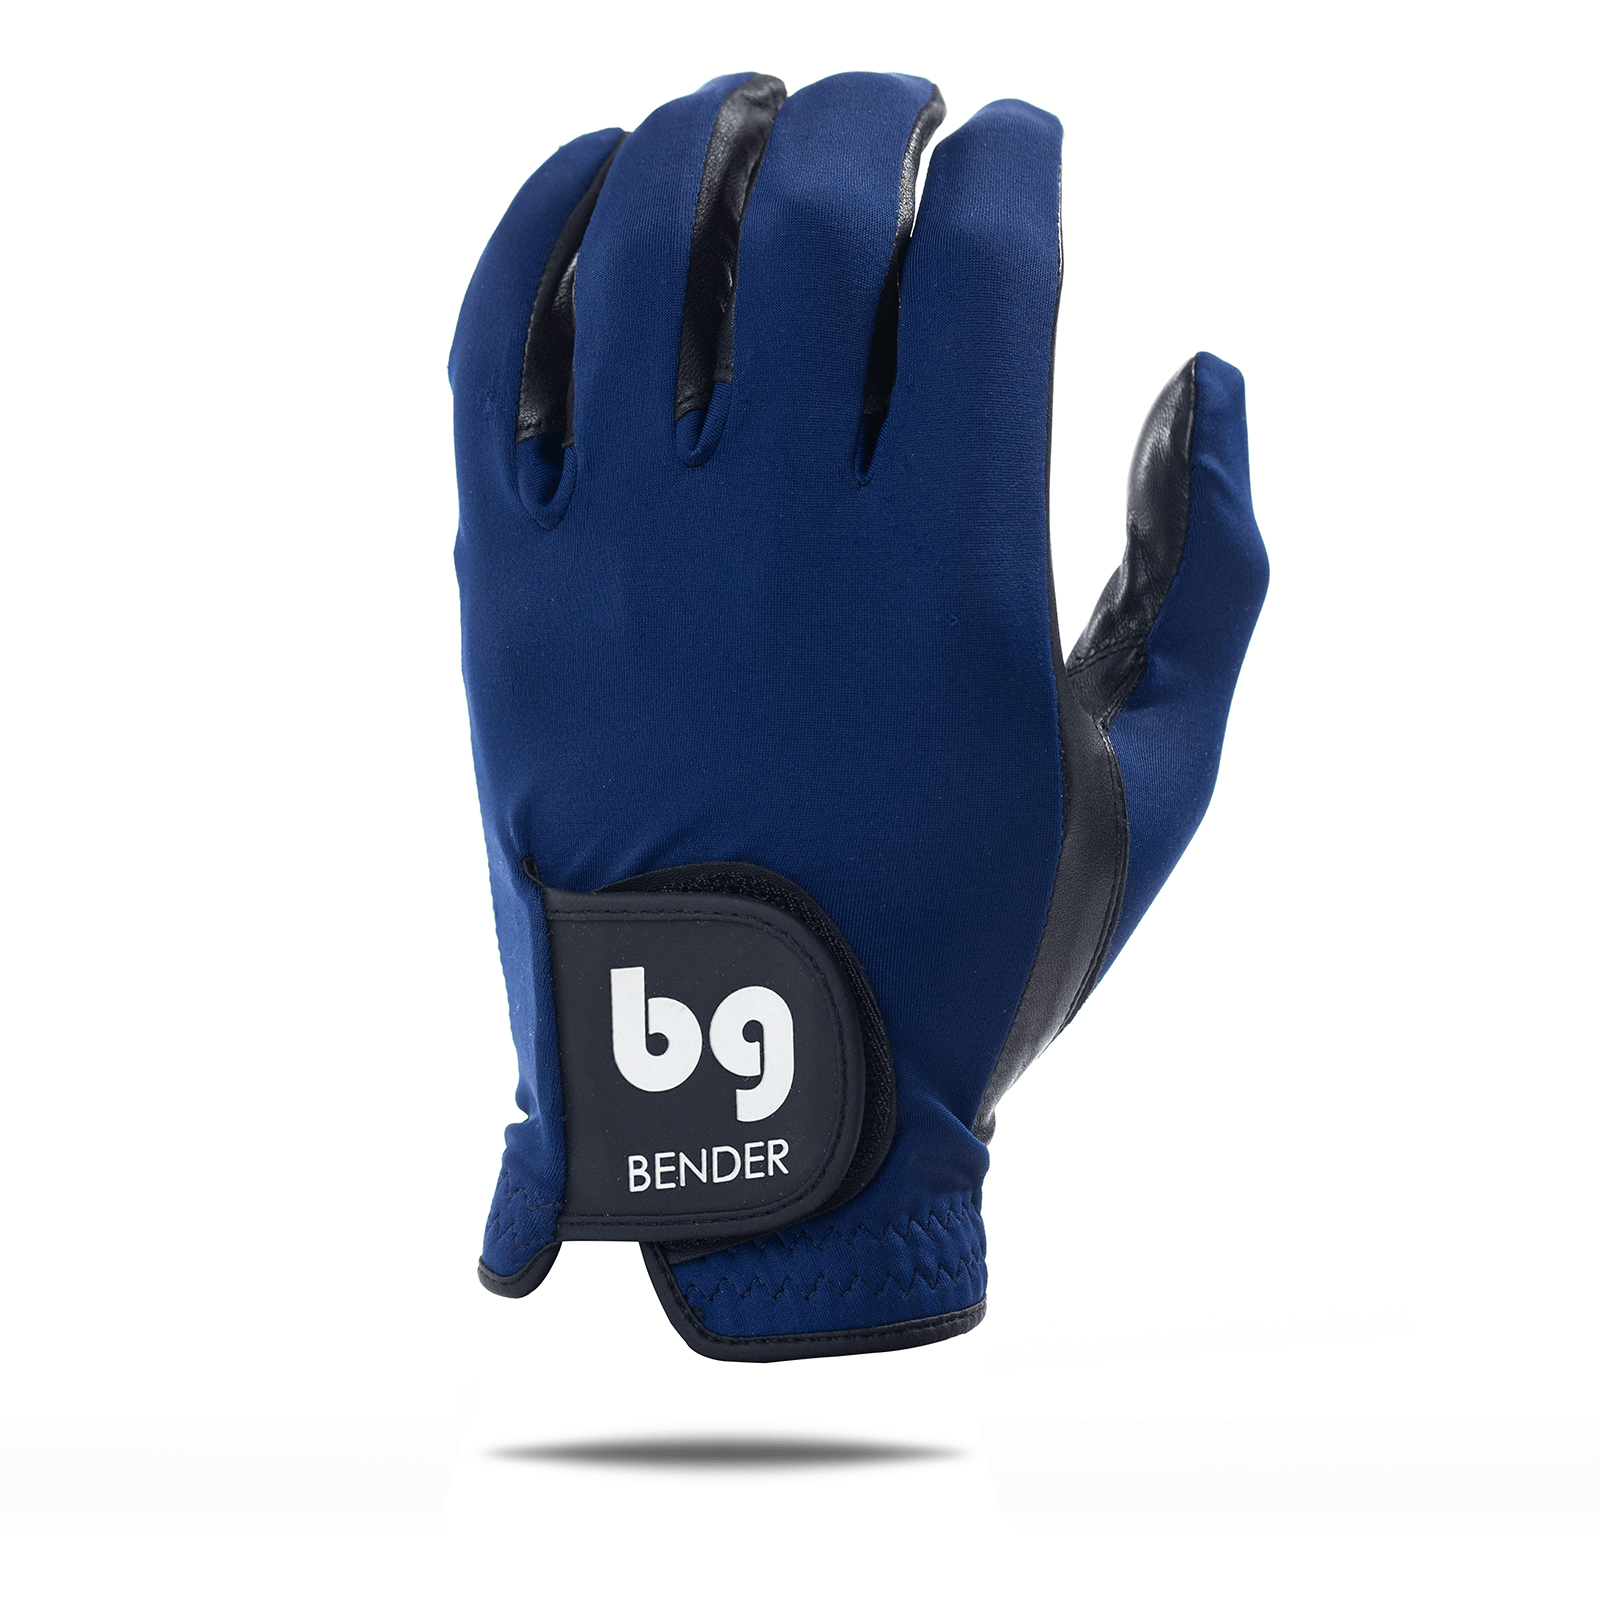 Navy Blue Spandex Golf Glove